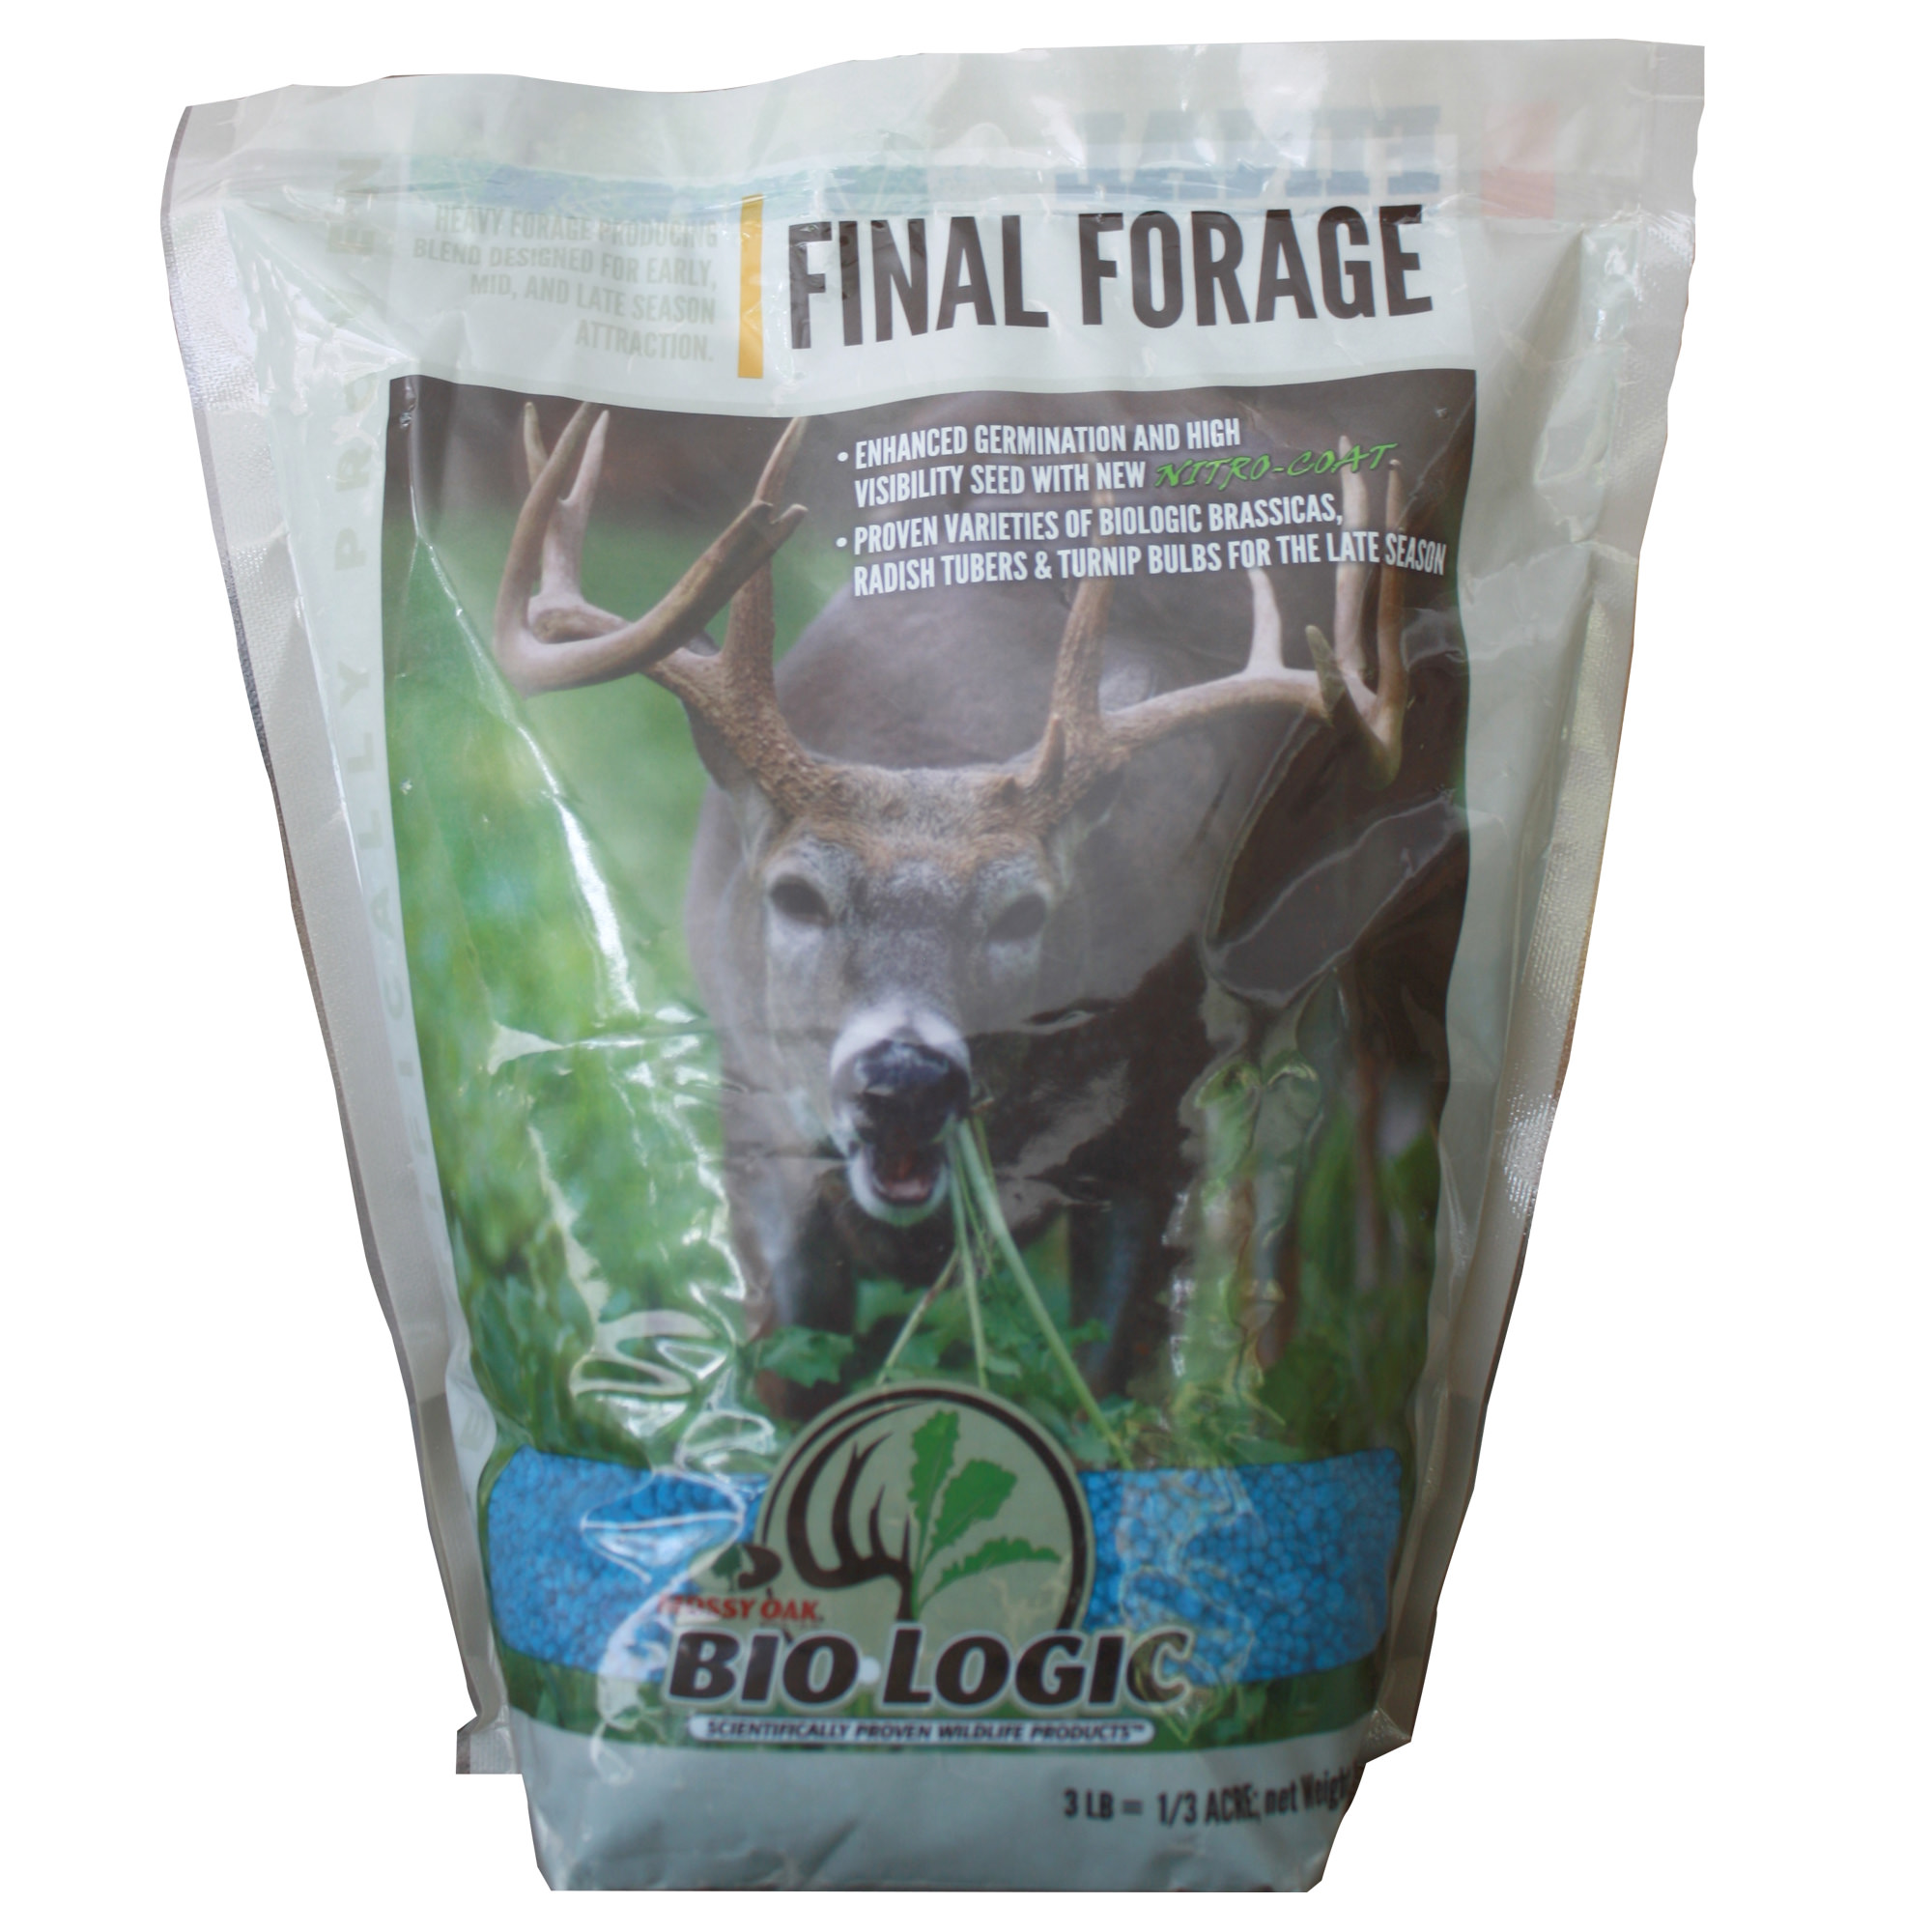 Mossy Oak BioLogic Final Forage Late Season Deer Food Plot Seed